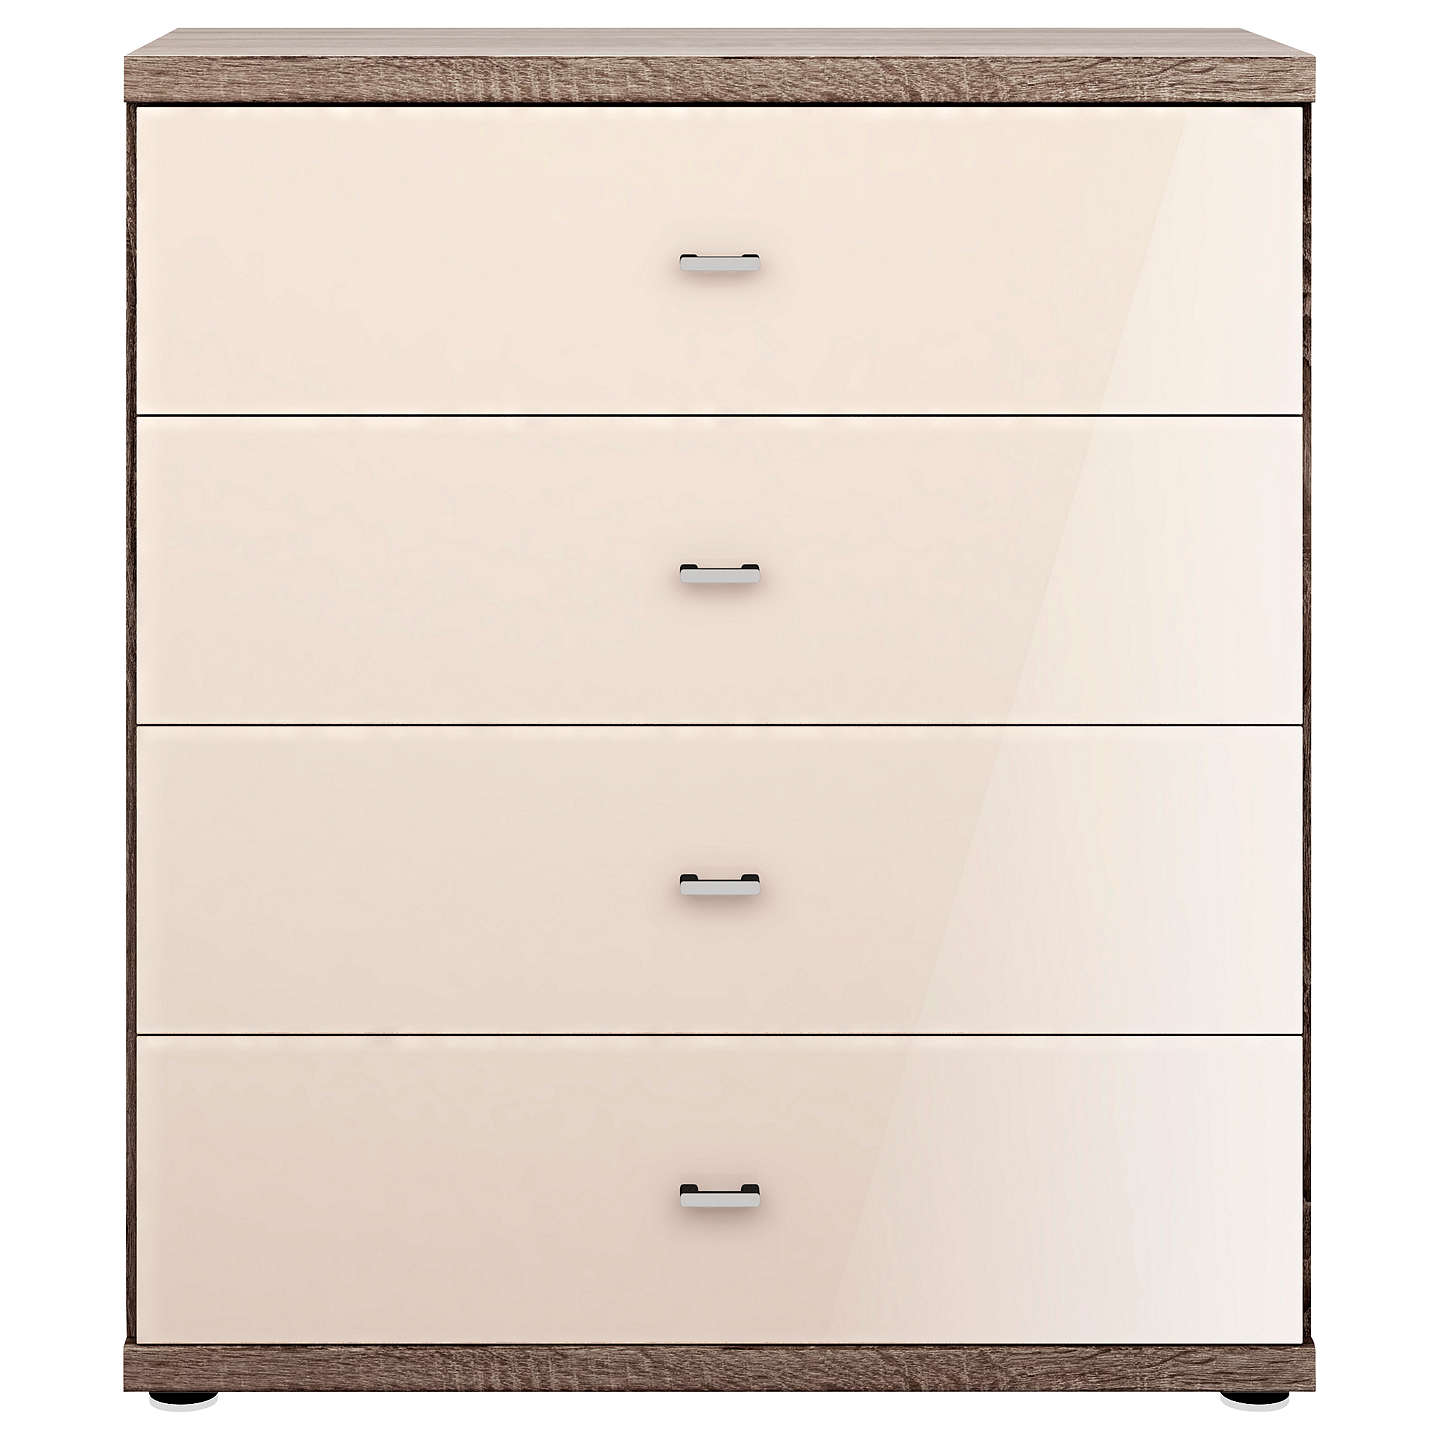 BuyJohn Lewis Satis Glass Front 4 Drawer Chest, Magnolia Glass/Dark Rustic Oak Online at johnlewis.com